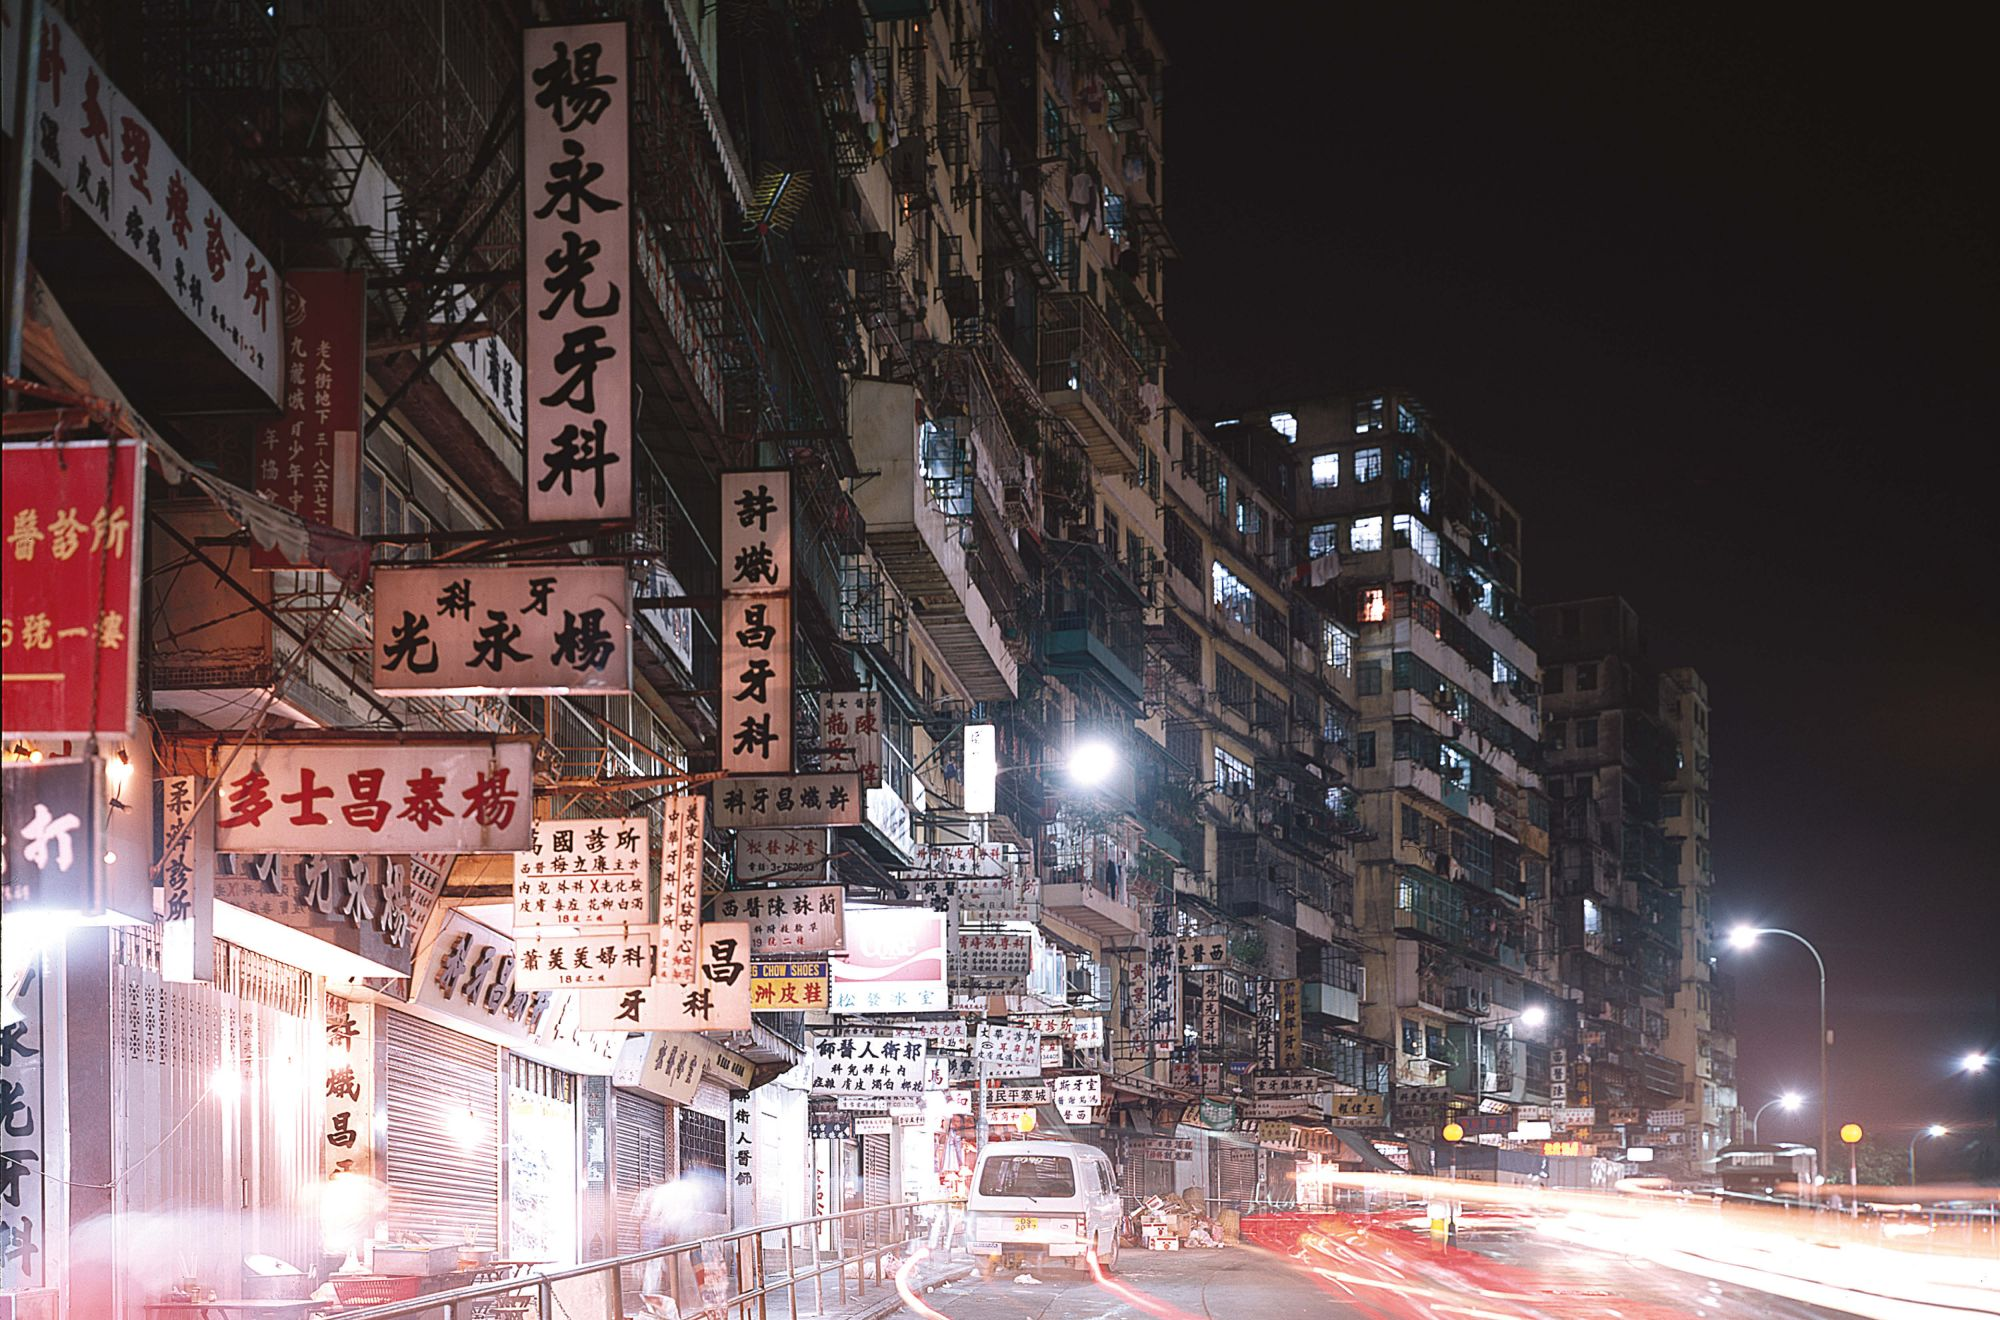 If These Walls Could Talk: Kowloon Walled City As Captured By Photographers Ian Lambot And Greg Girard